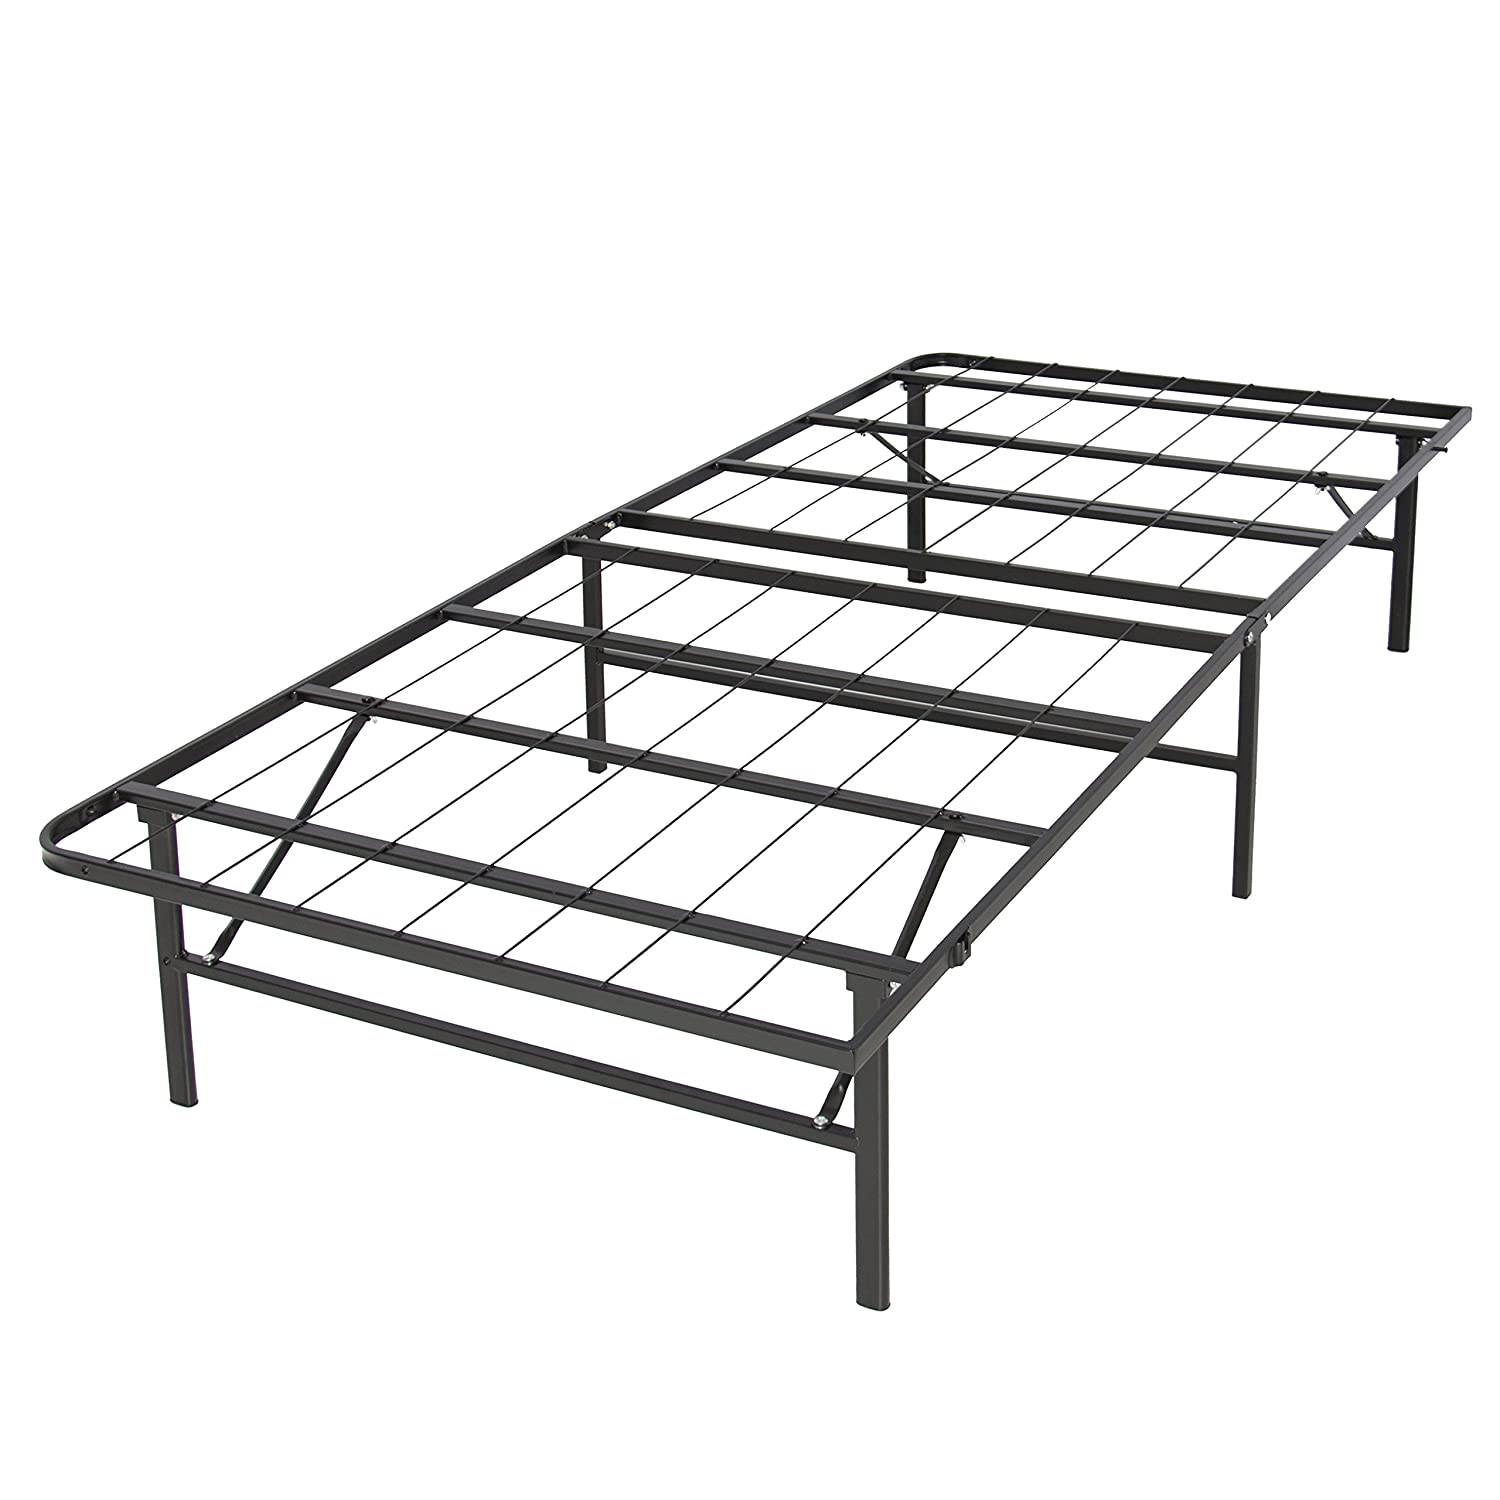 Amazon.com: Best Choice Products Platform Metal Bed Frame Foldable ...